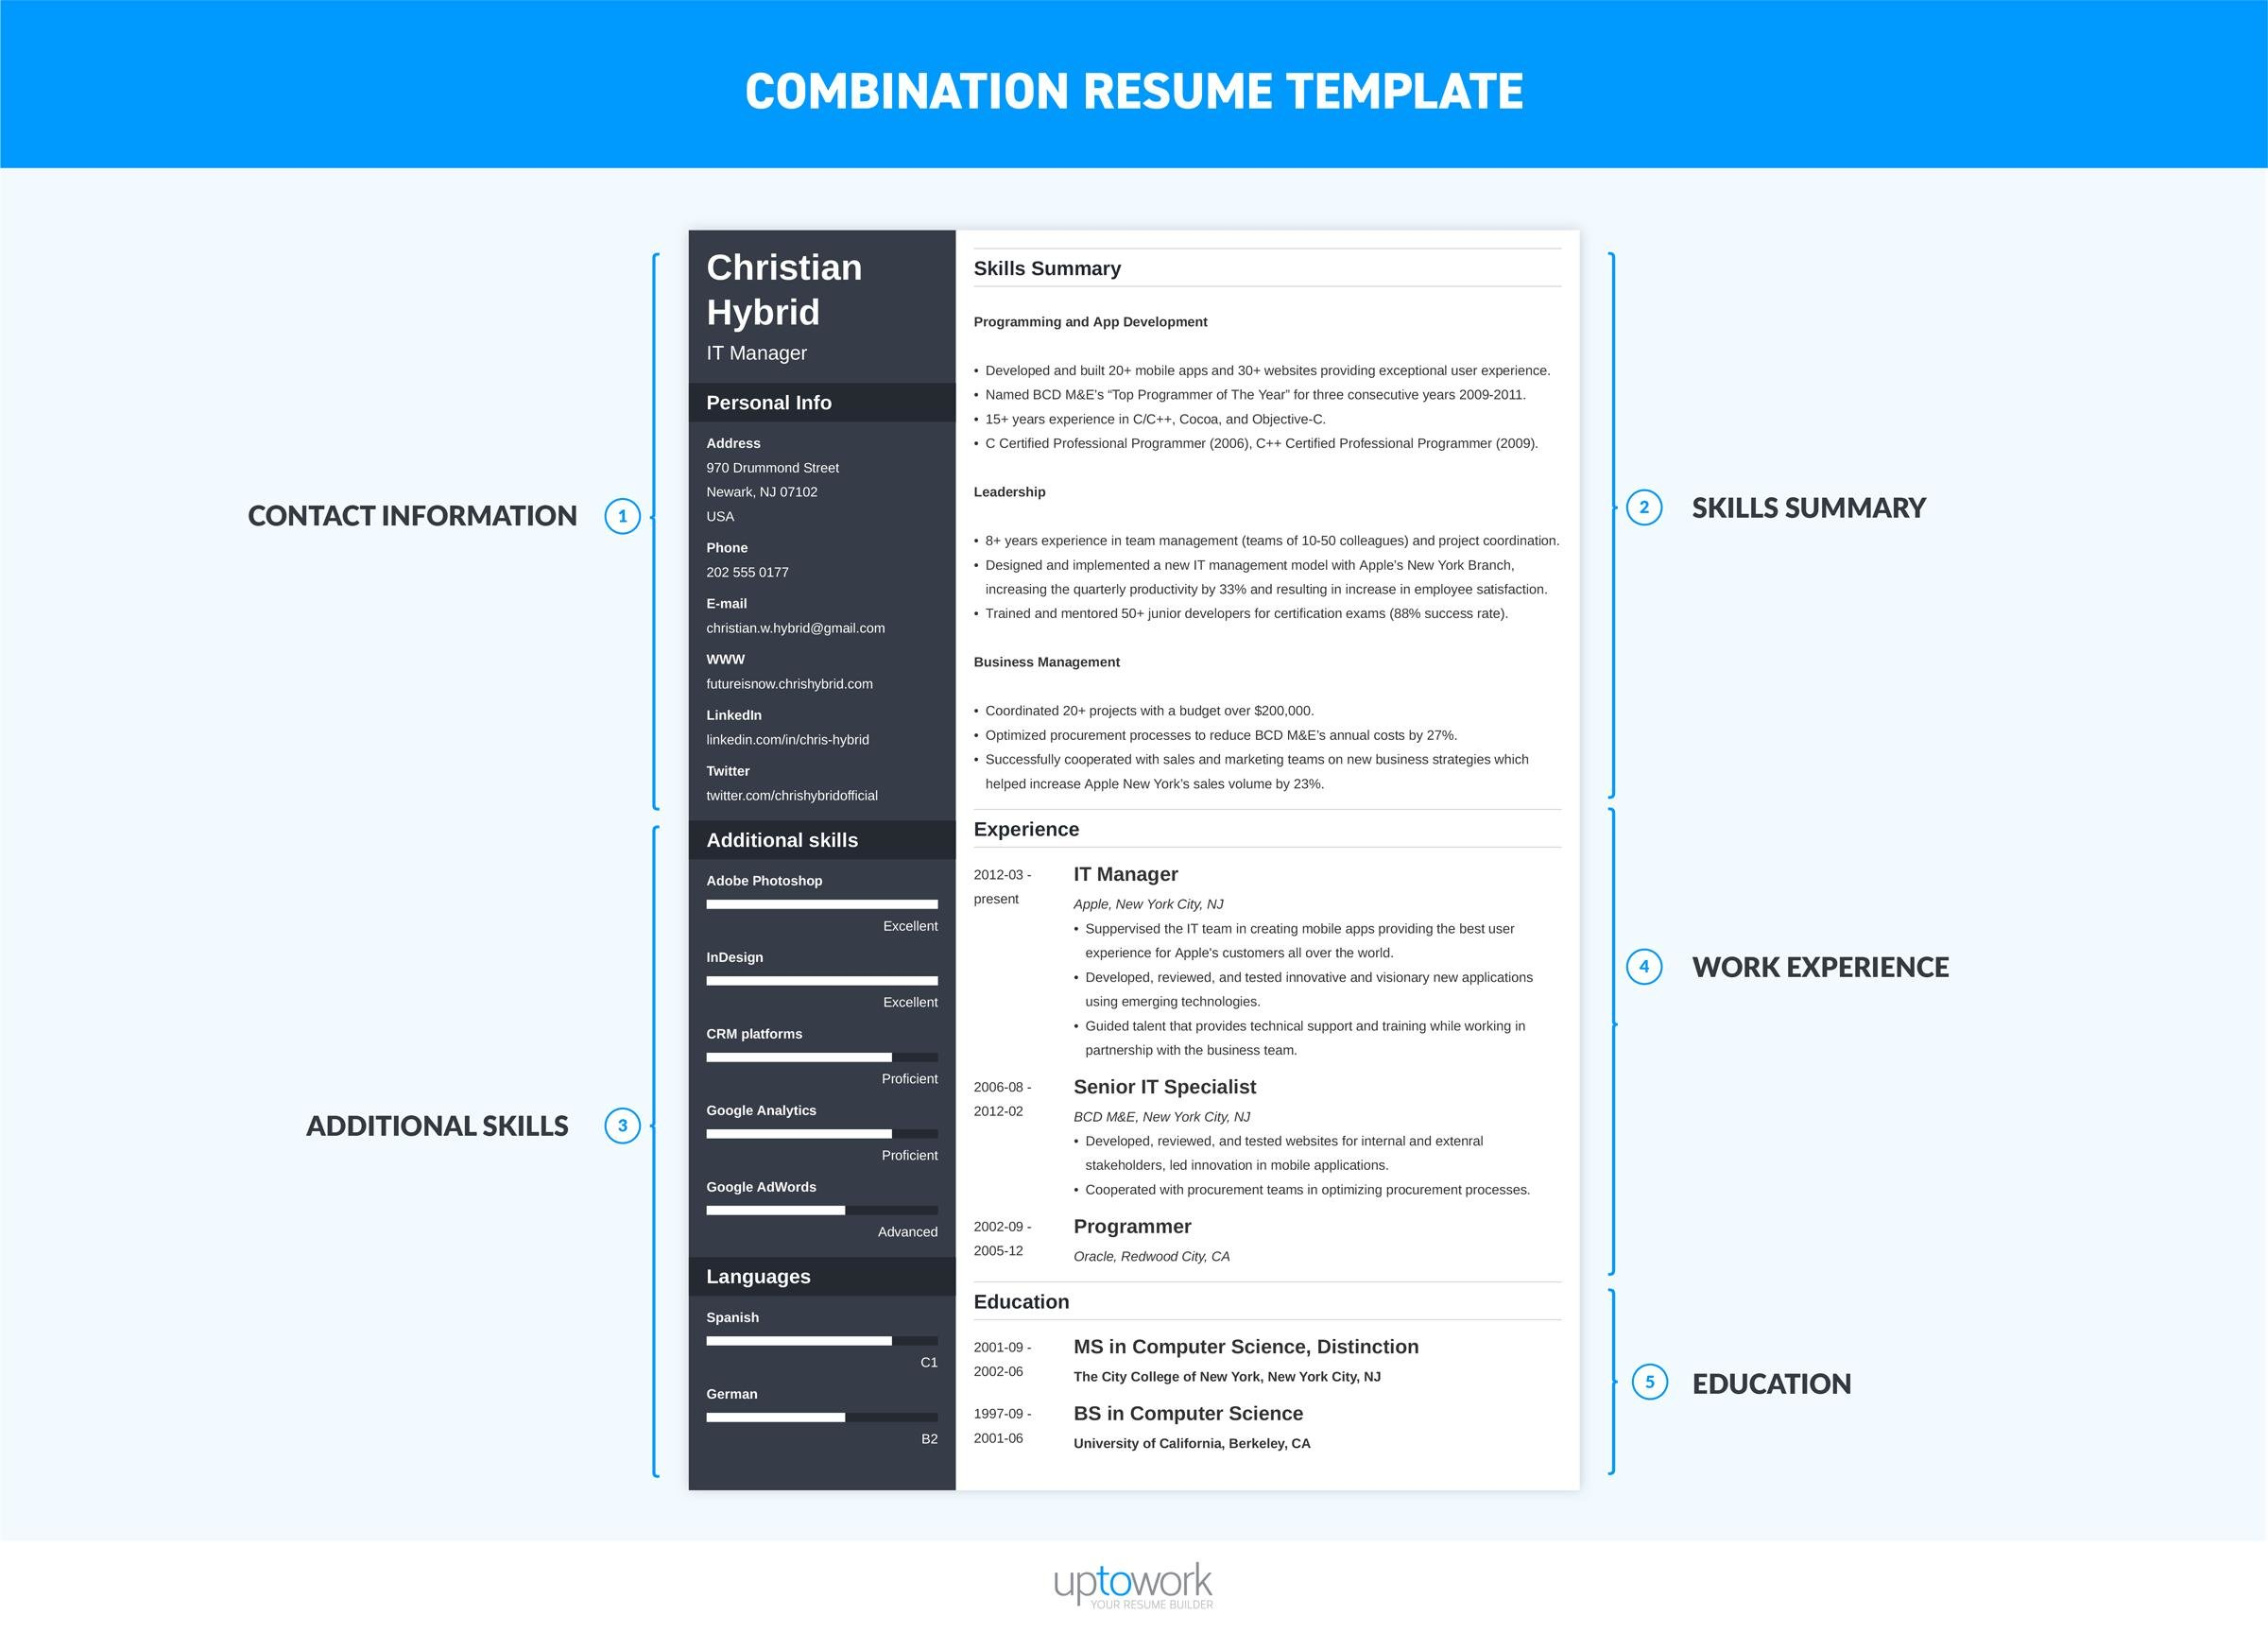 best resume format professional samples new template example of the combination call Resume New Resume Format Template